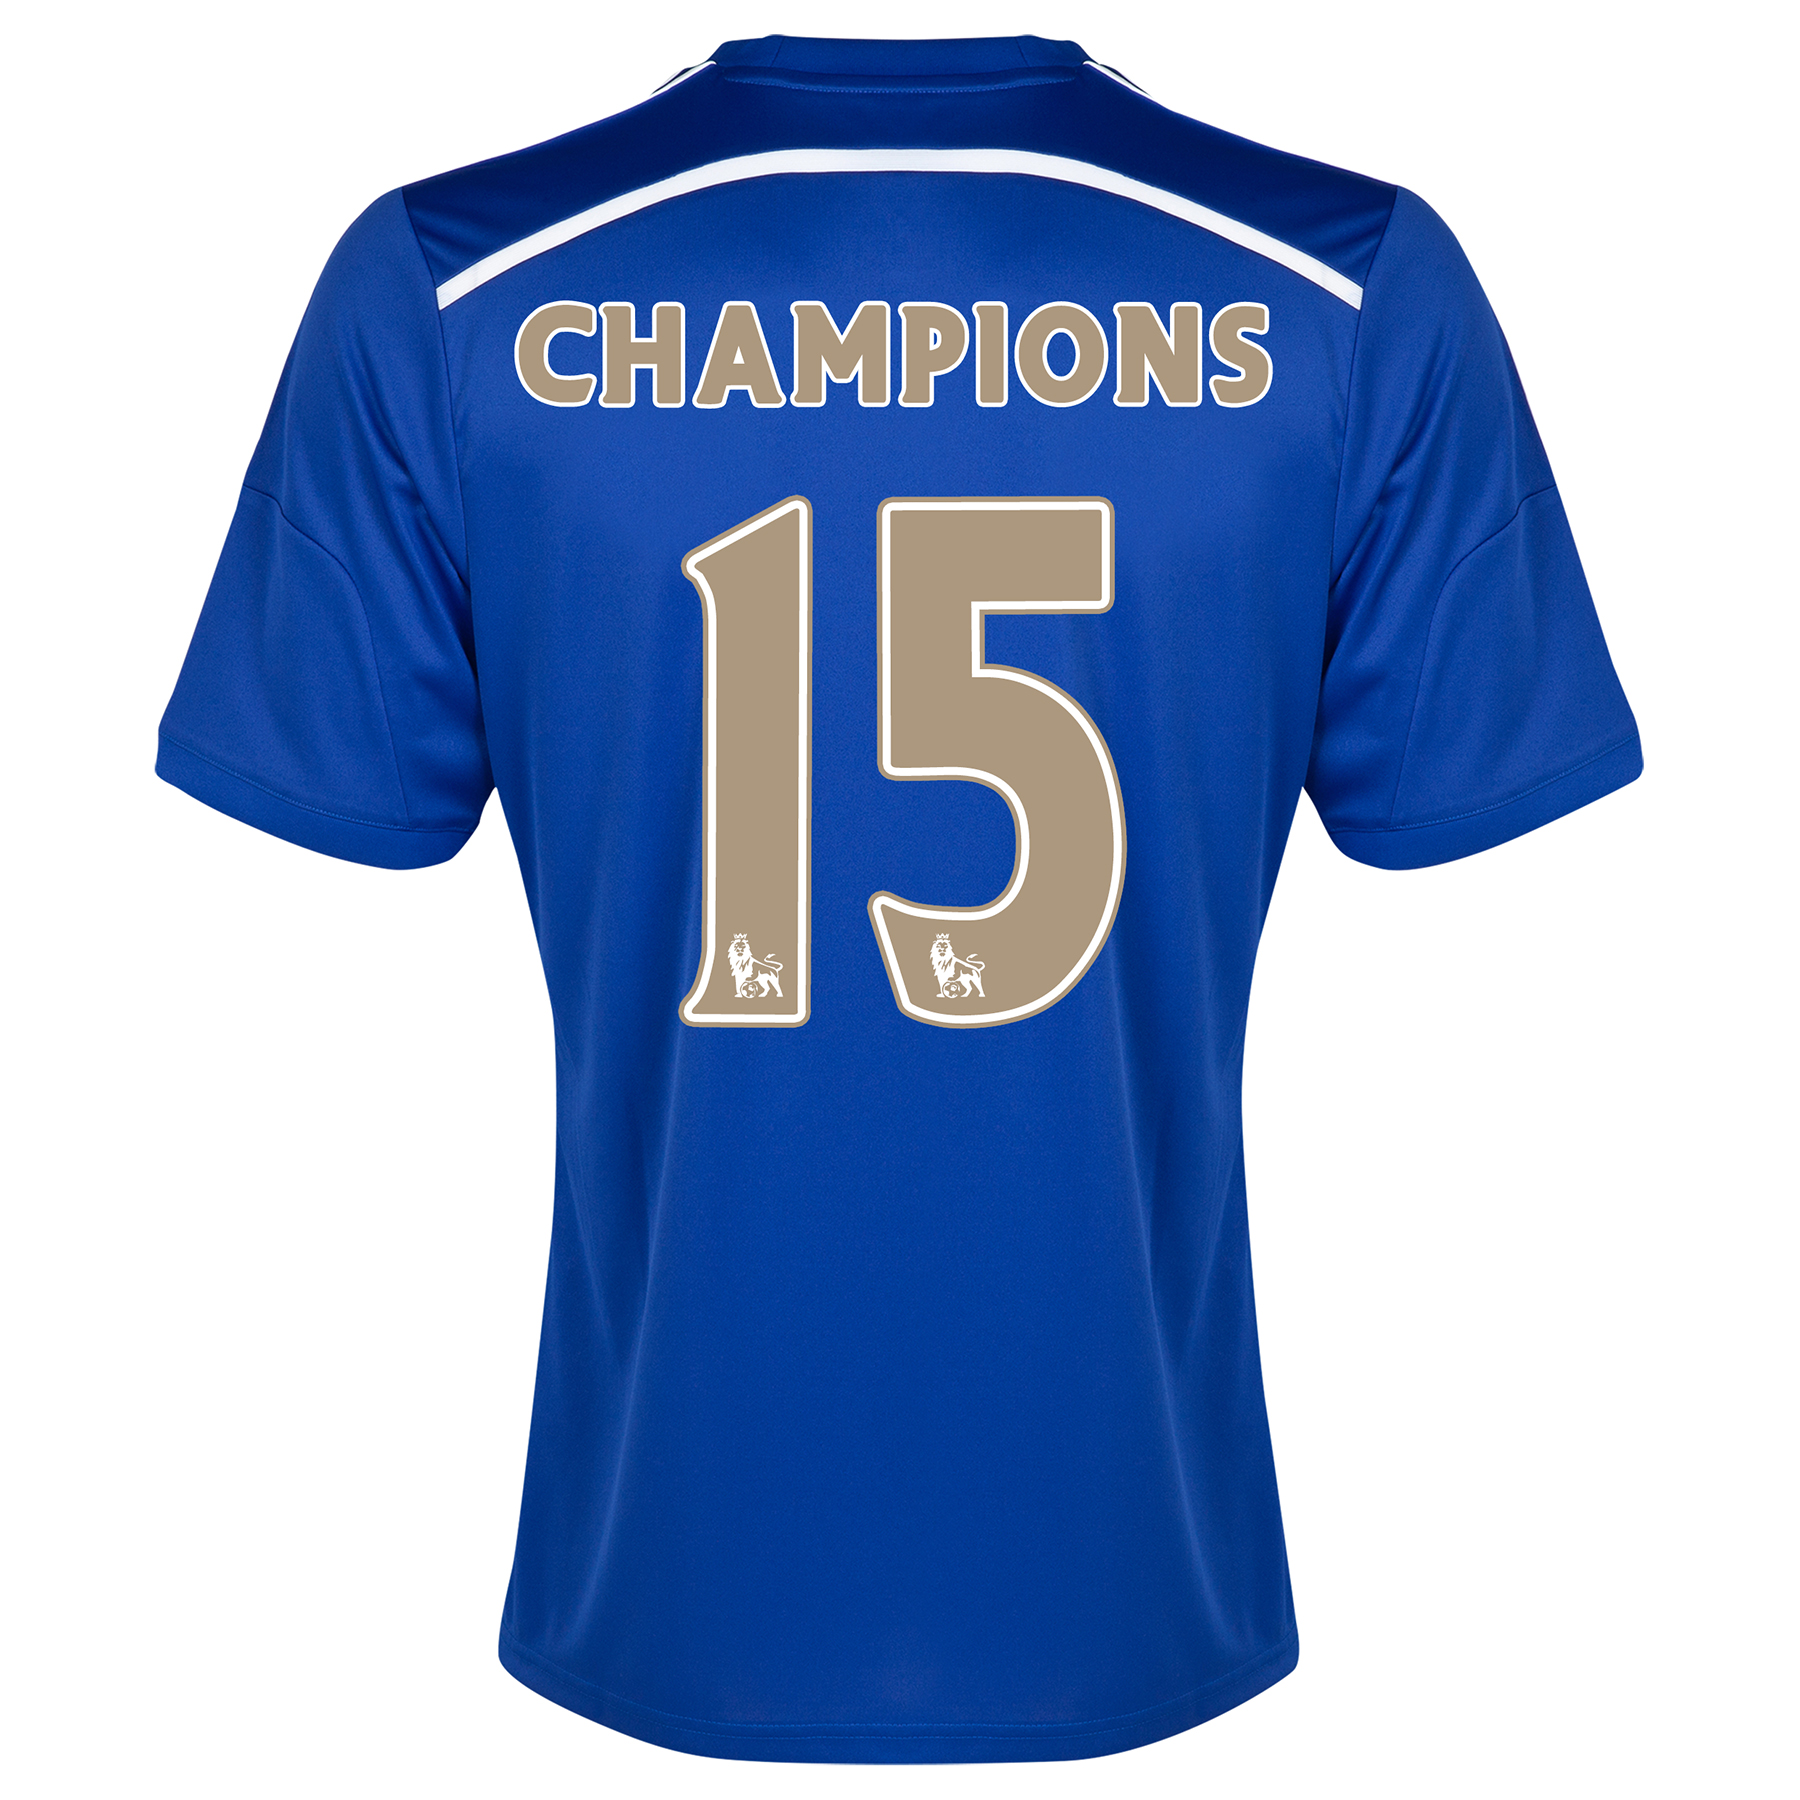 Chelsea Champions 2015 Home Shirt - Outsize